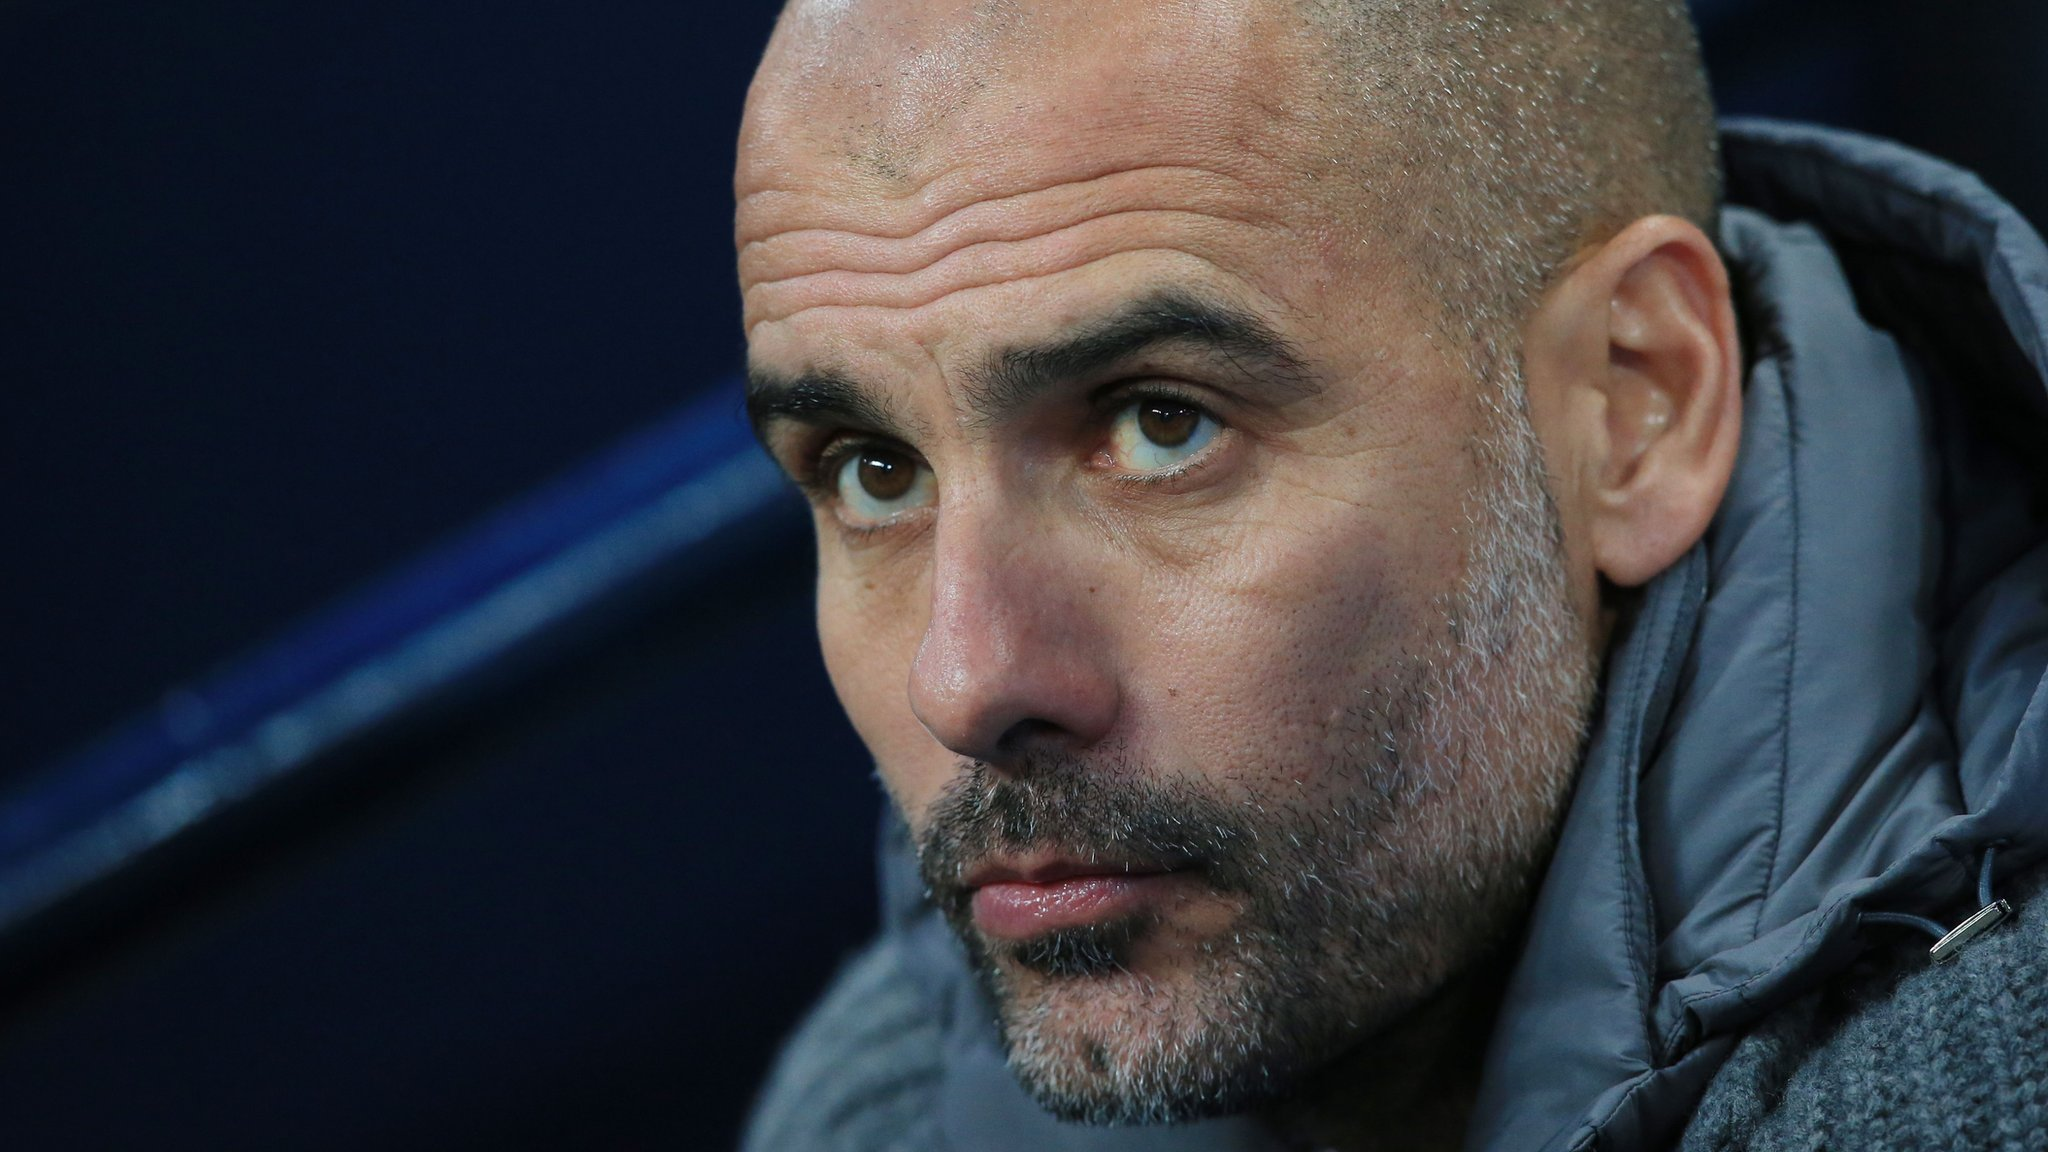 Manchester City: Pep Guardiola asked to explain pre-derby referee comments